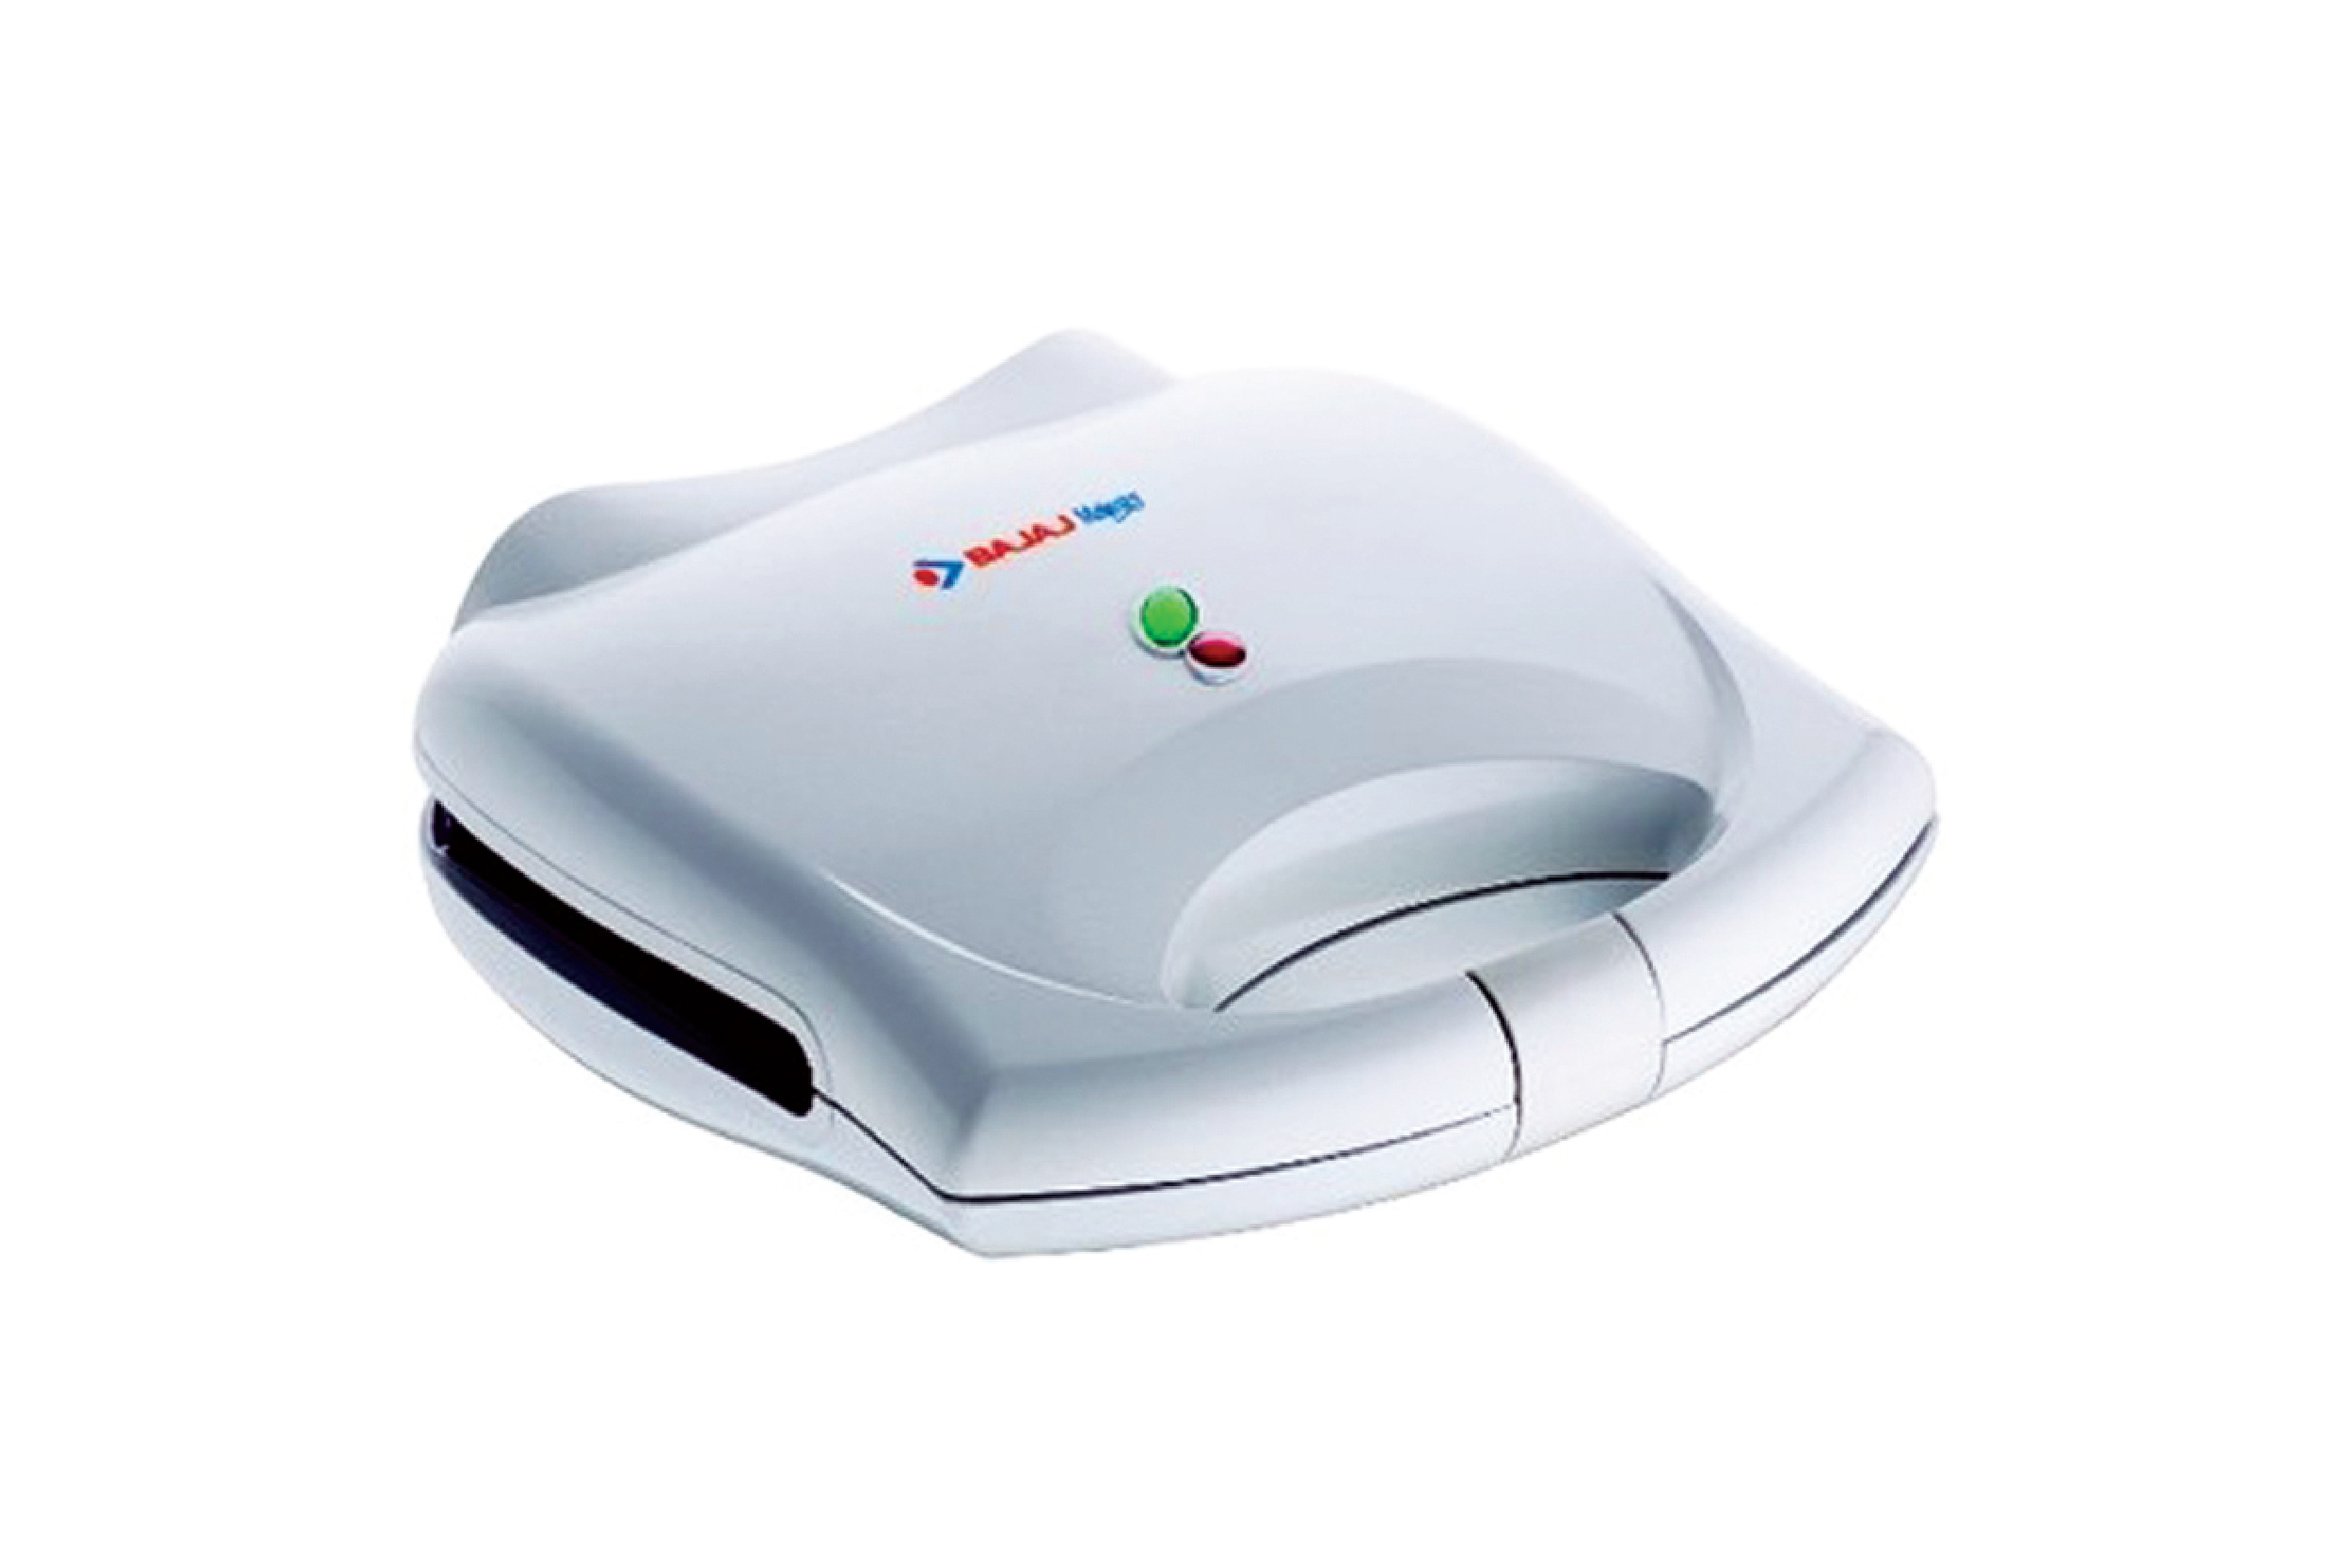 Bajaj majesty sandwich maker new - swx